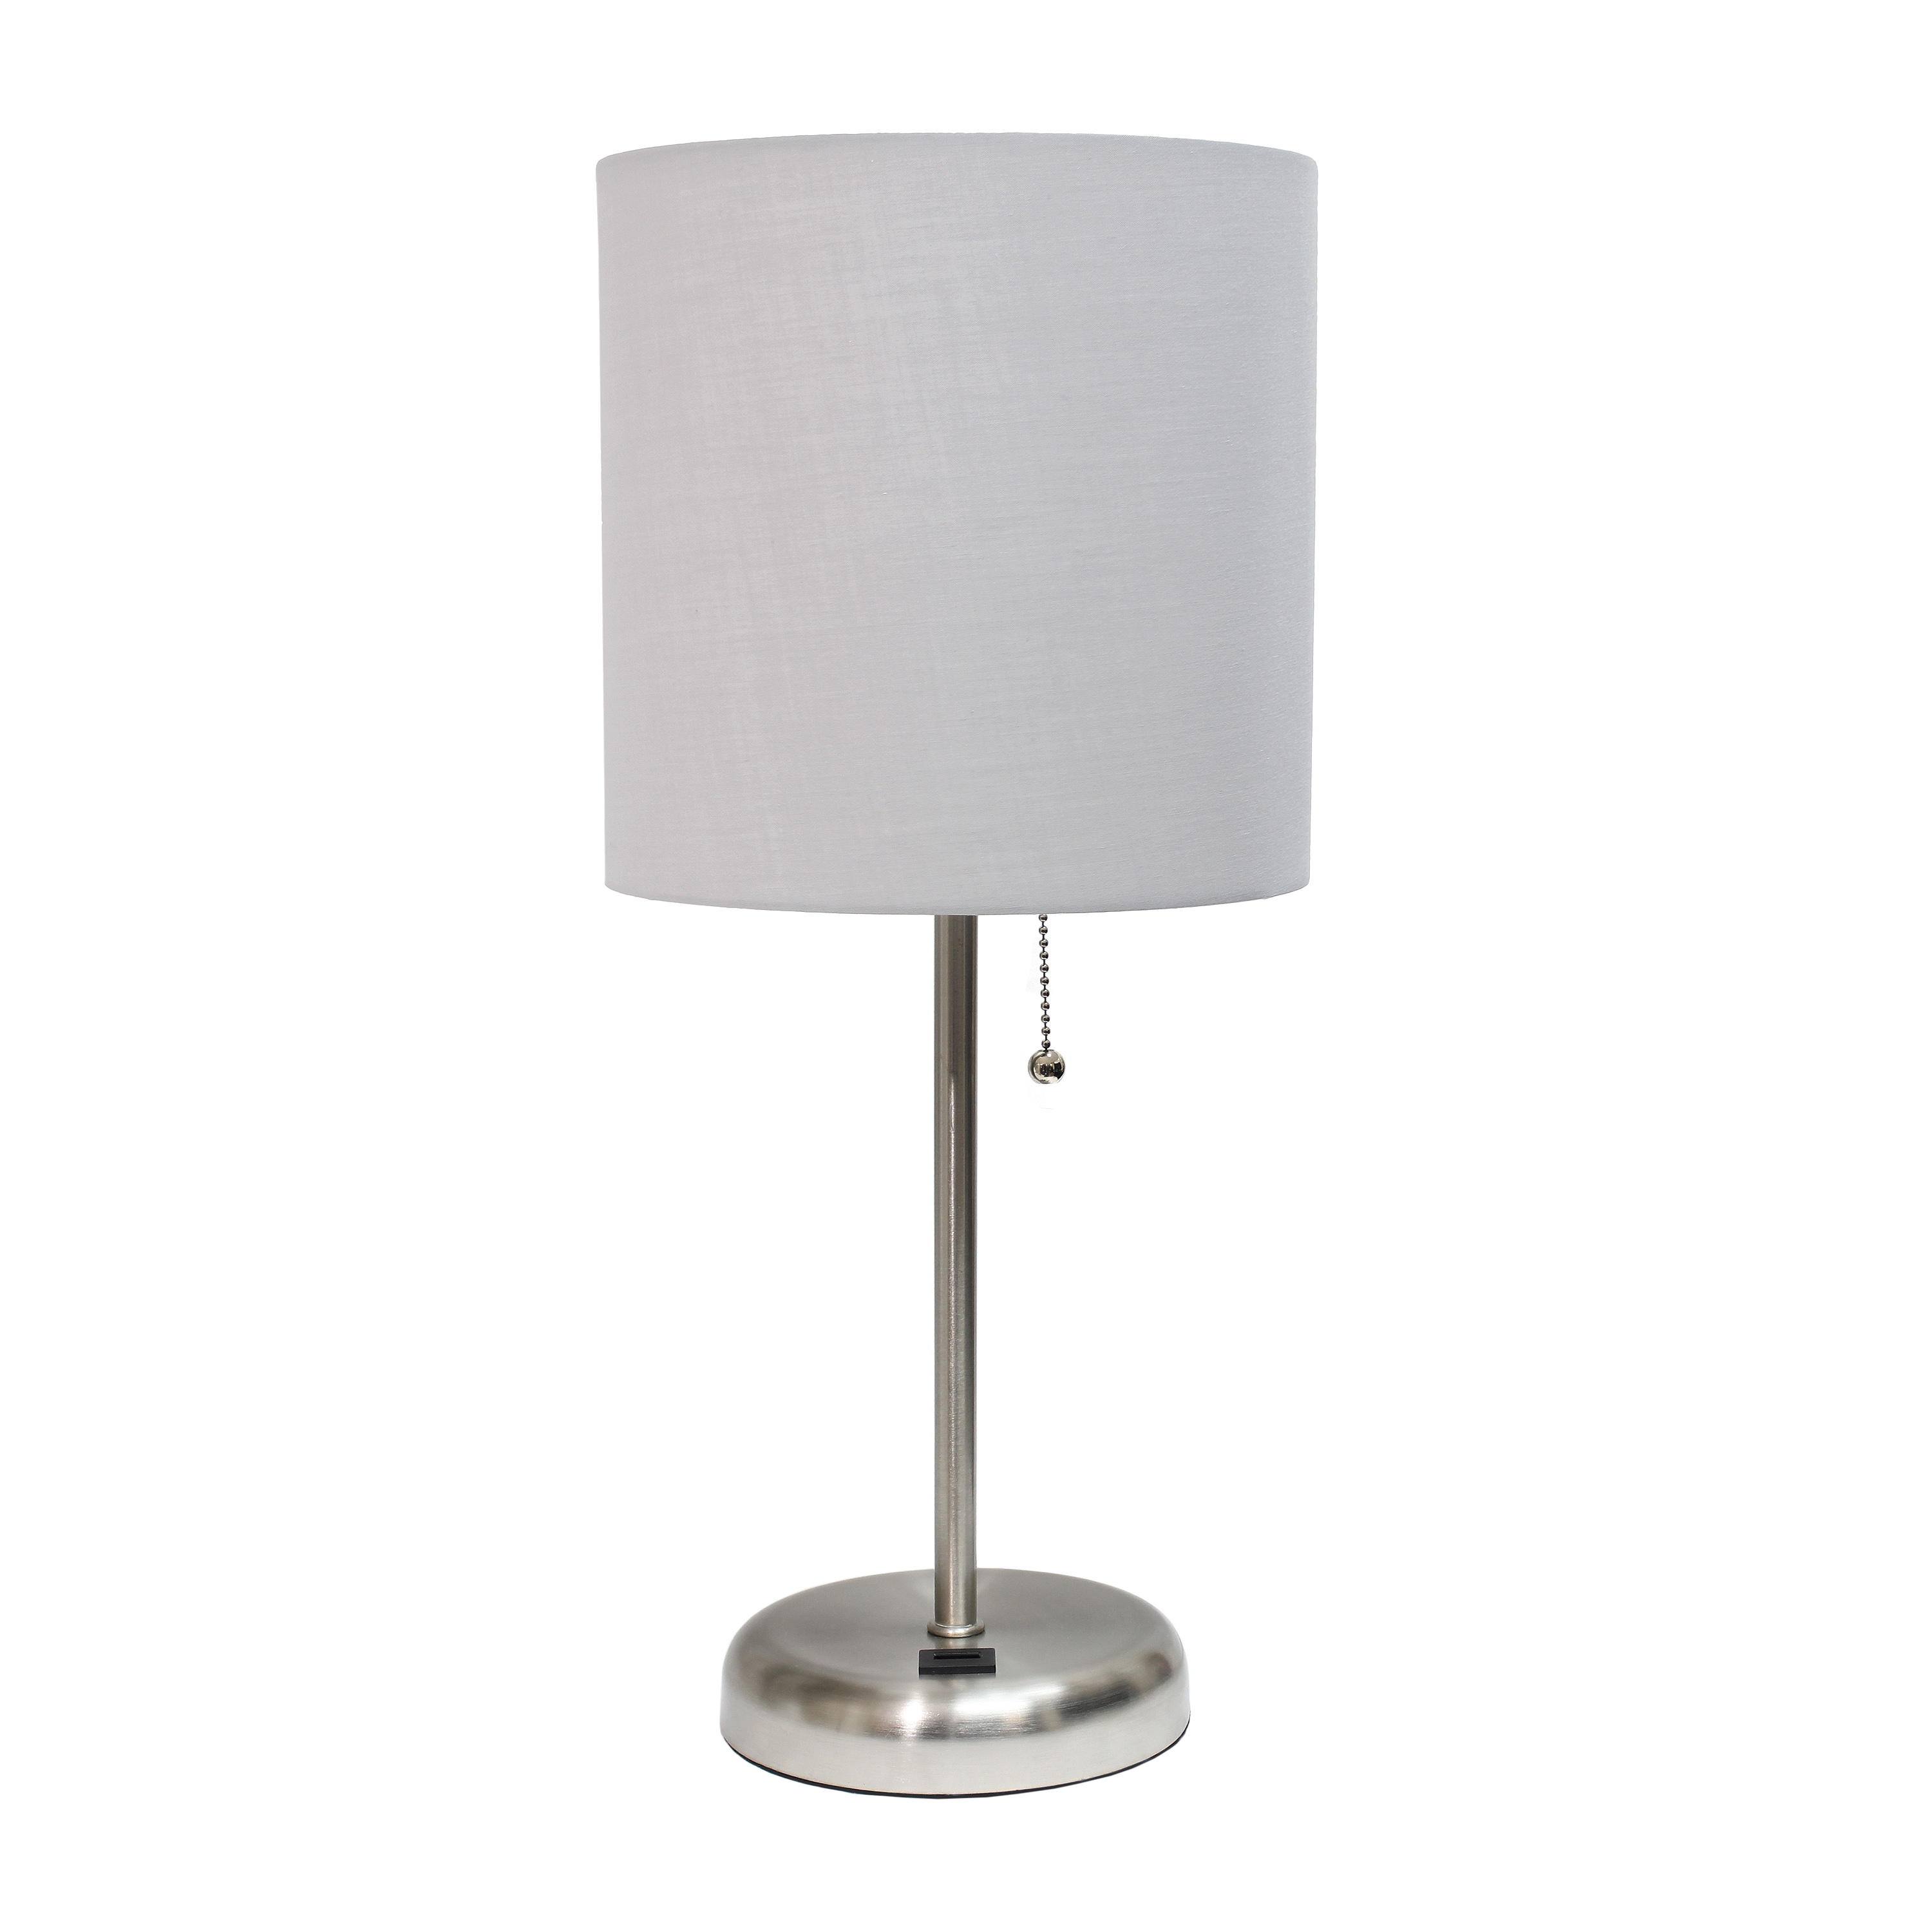 LimeLights Stick Lamp with USB charging port and Fabric Shade, Gray